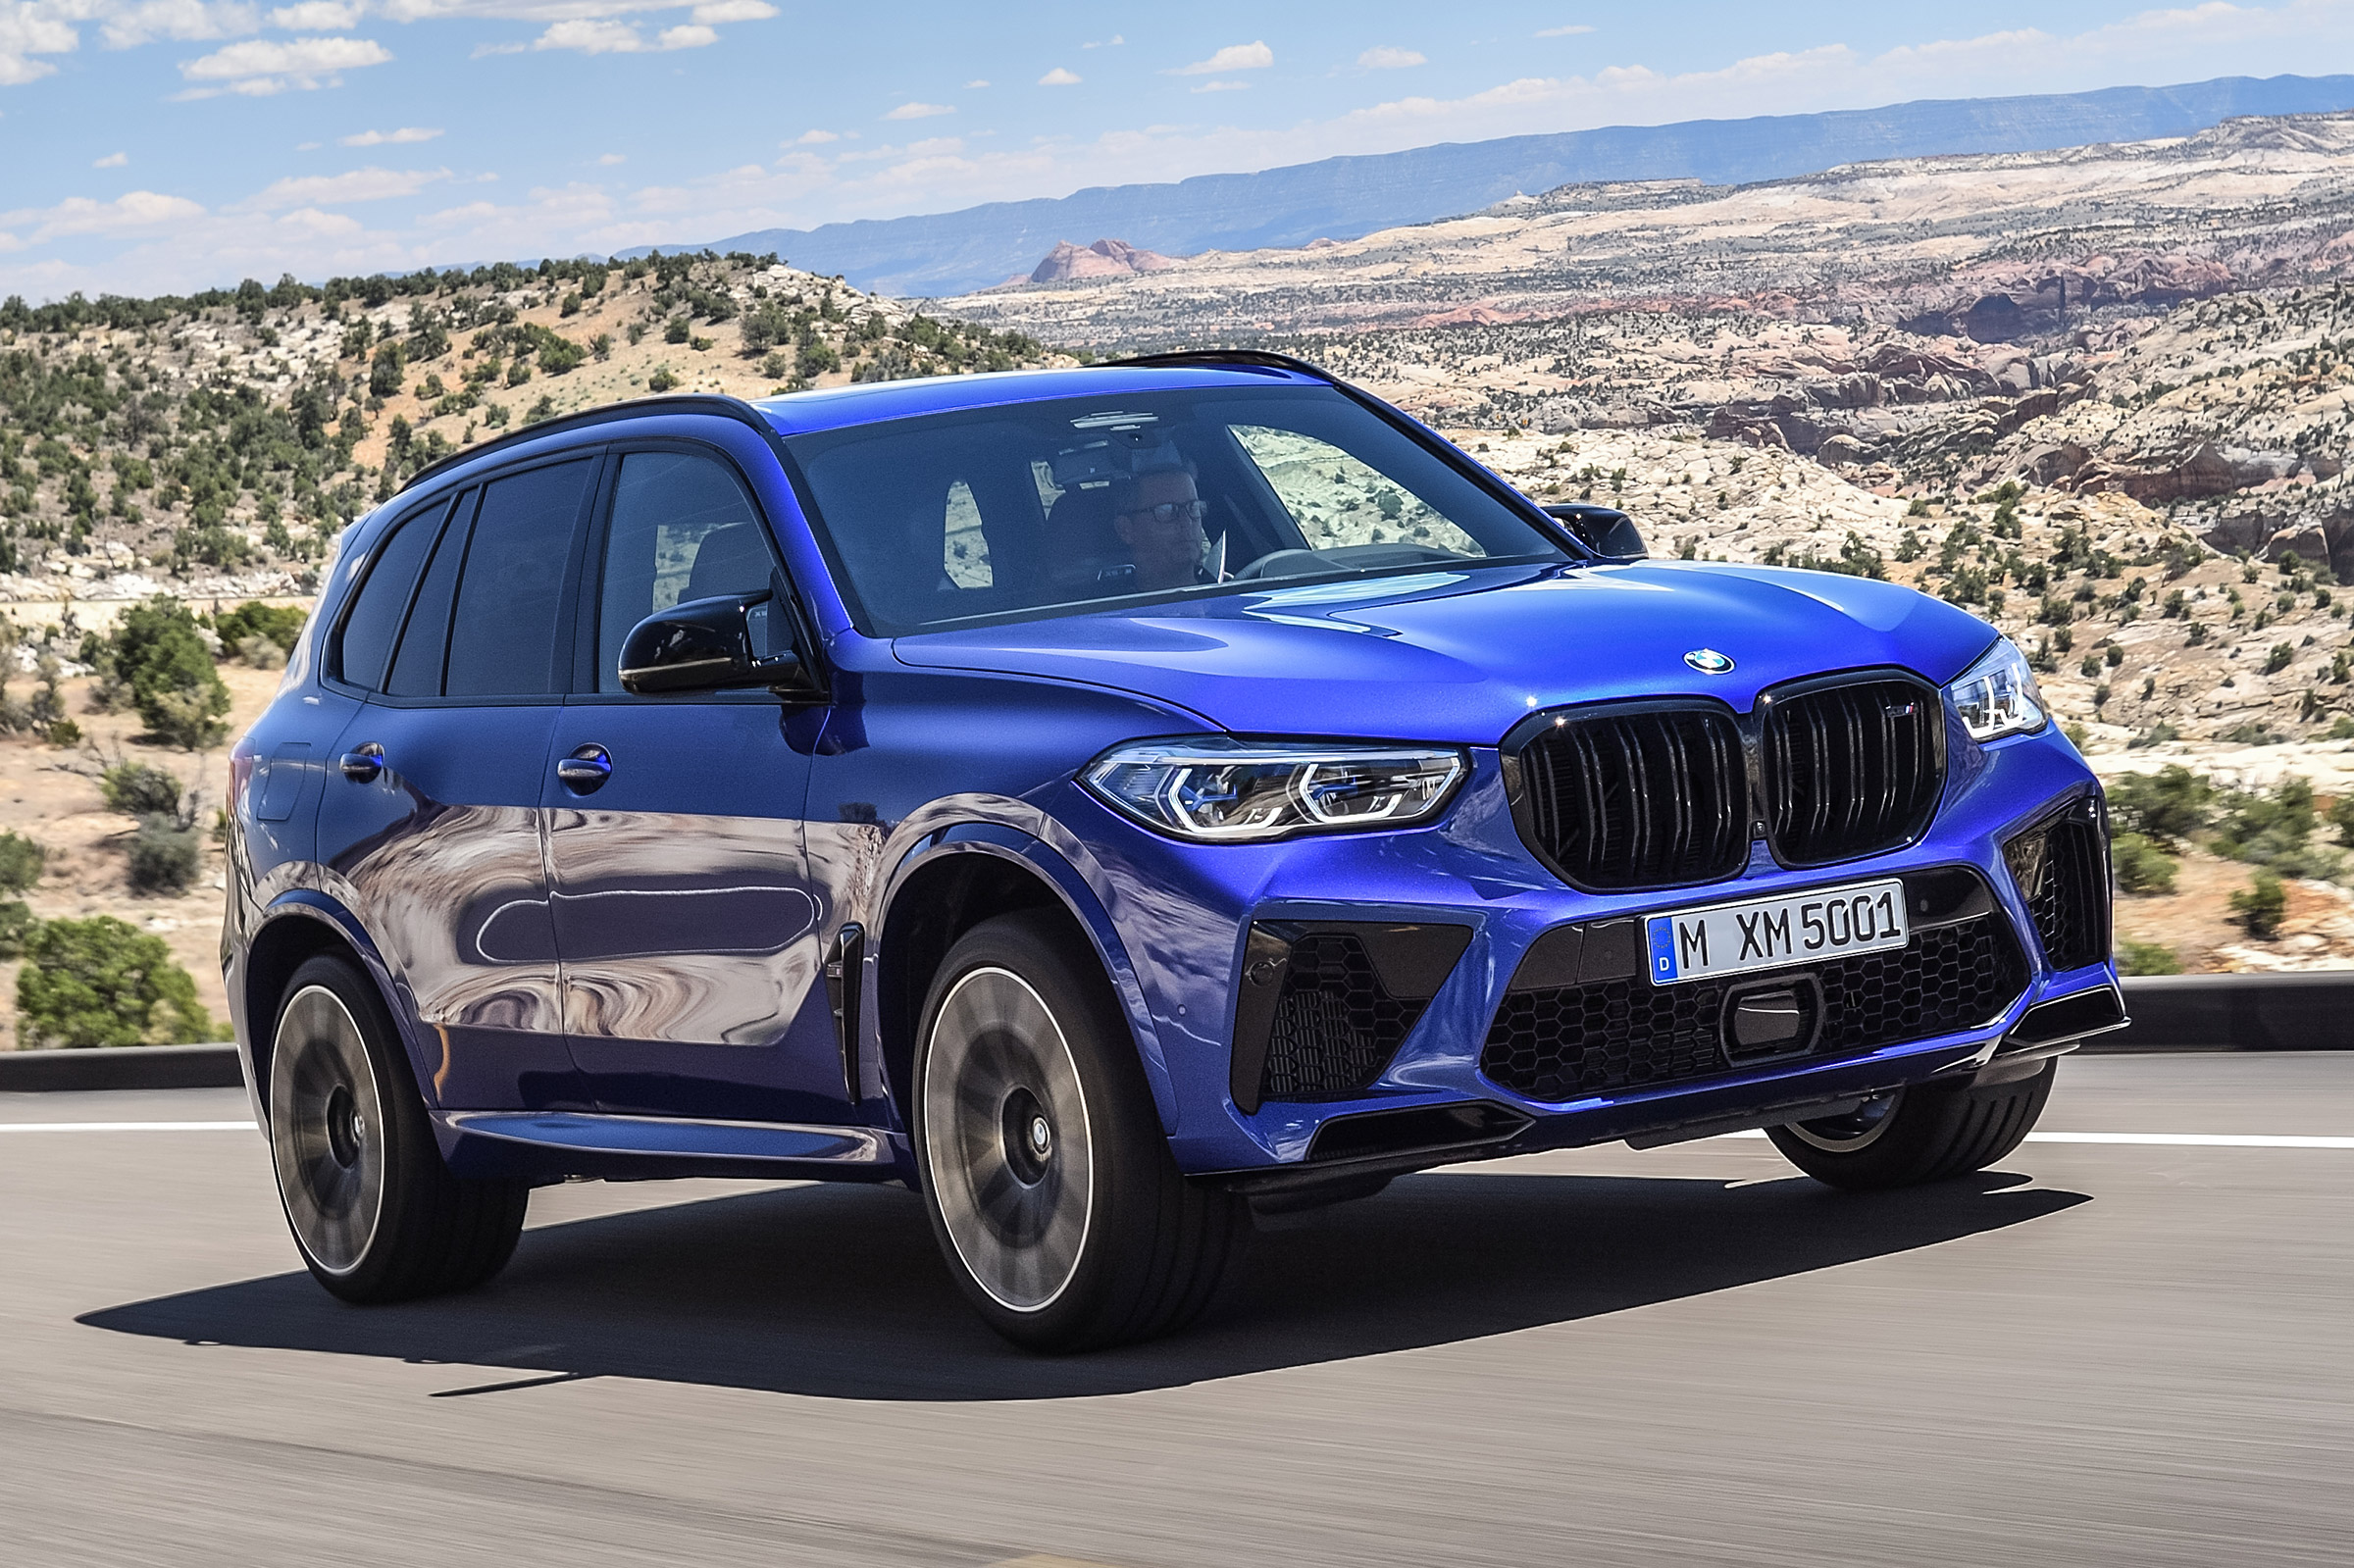 New 2020 Bmw X5 M Arrives With V8 Power And 616bhp Auto Express